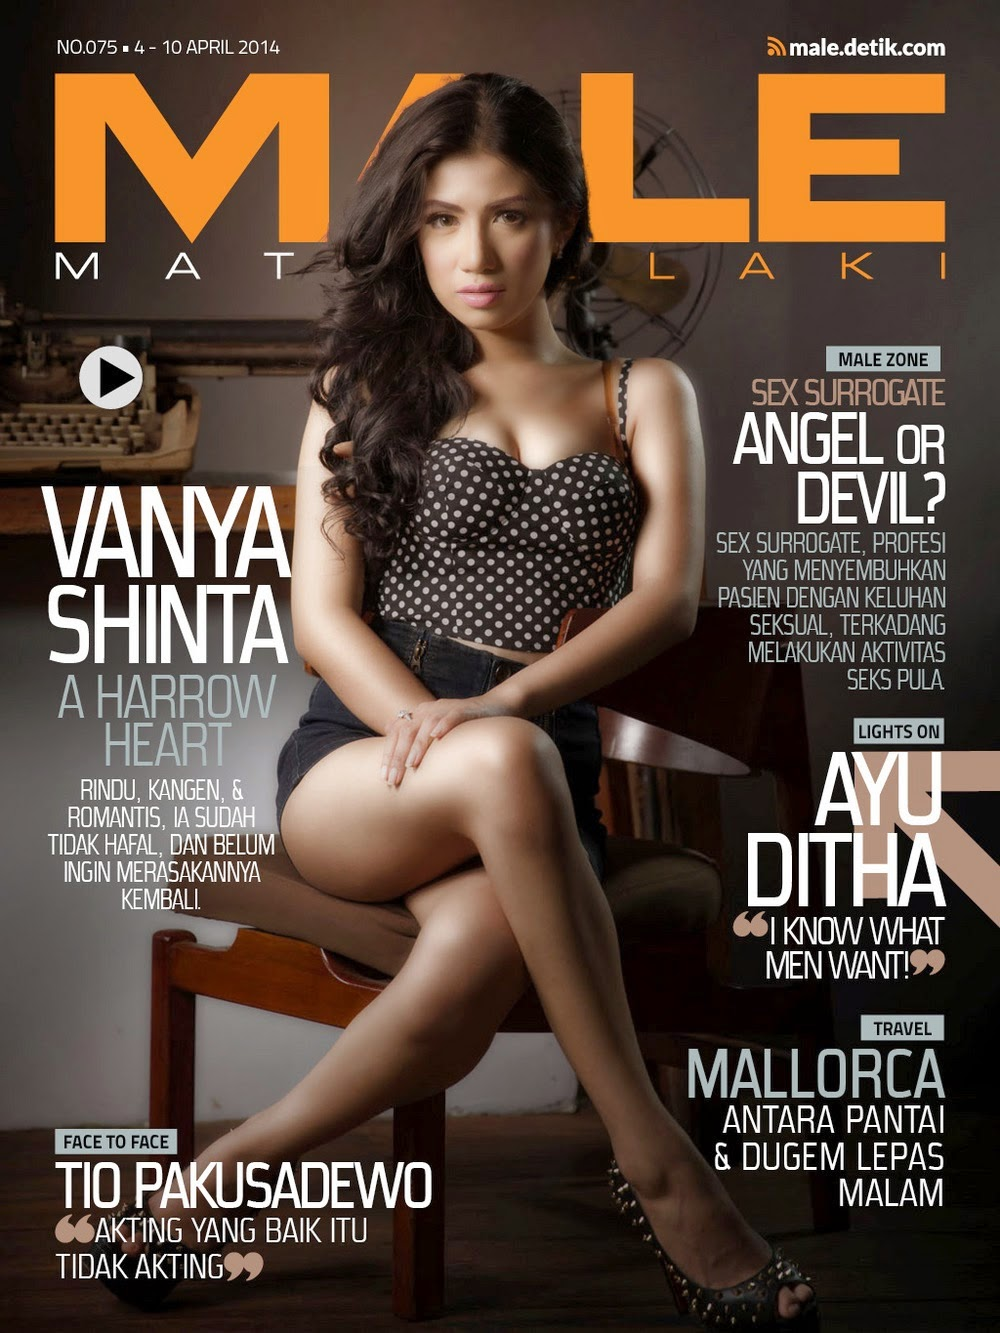 Vanya Shinta for Male Magazine Cover April 2014